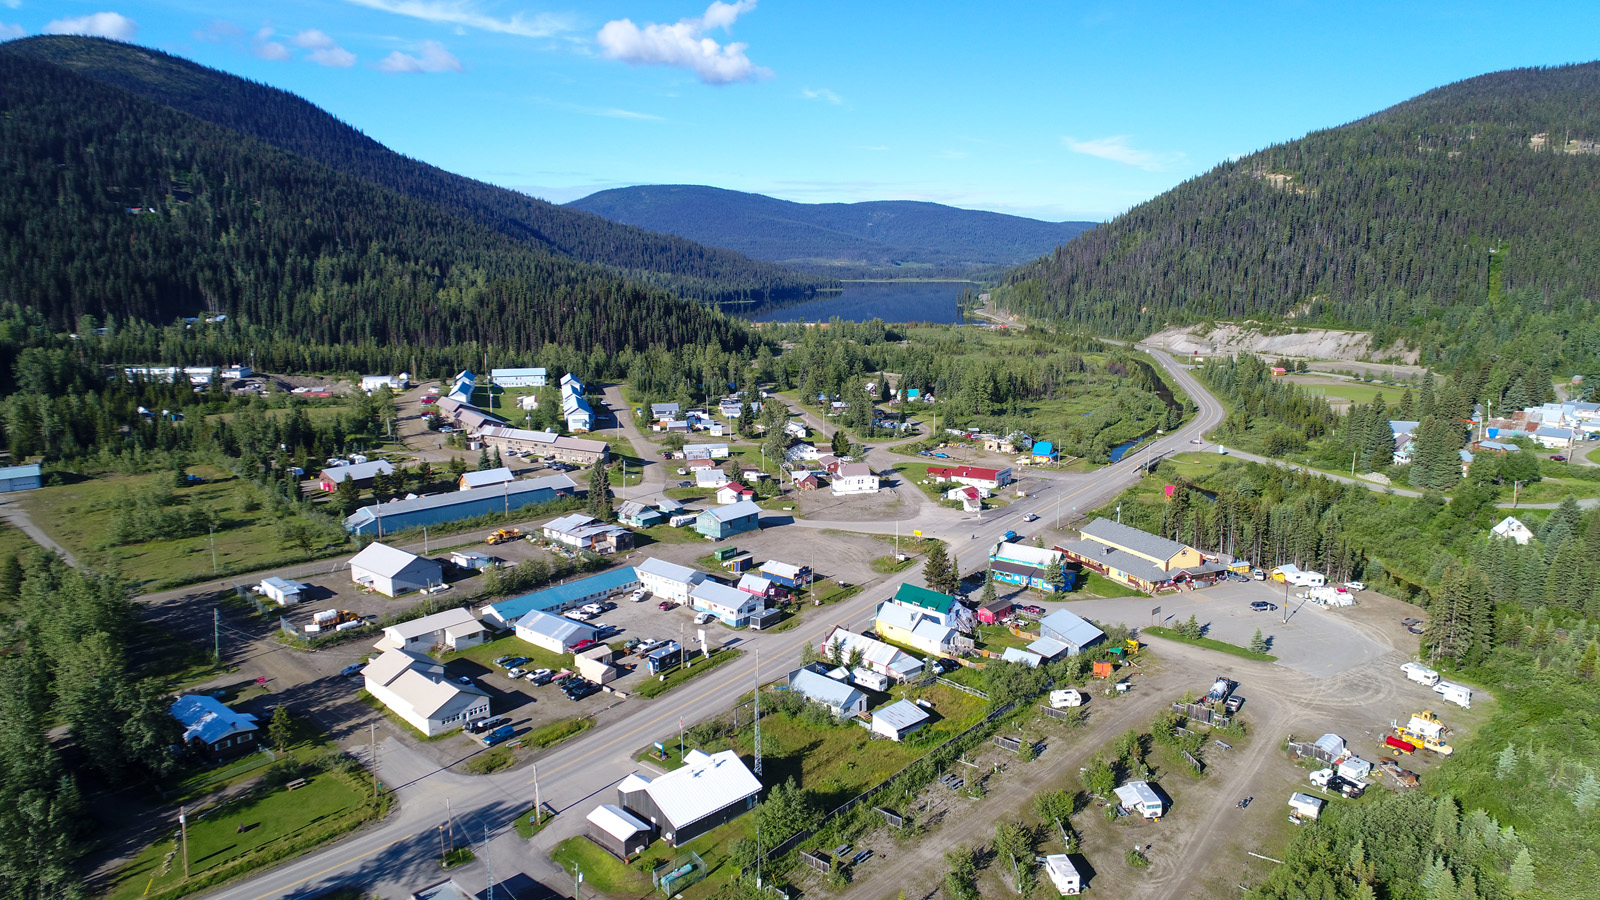 Cariboo joy rv park 02